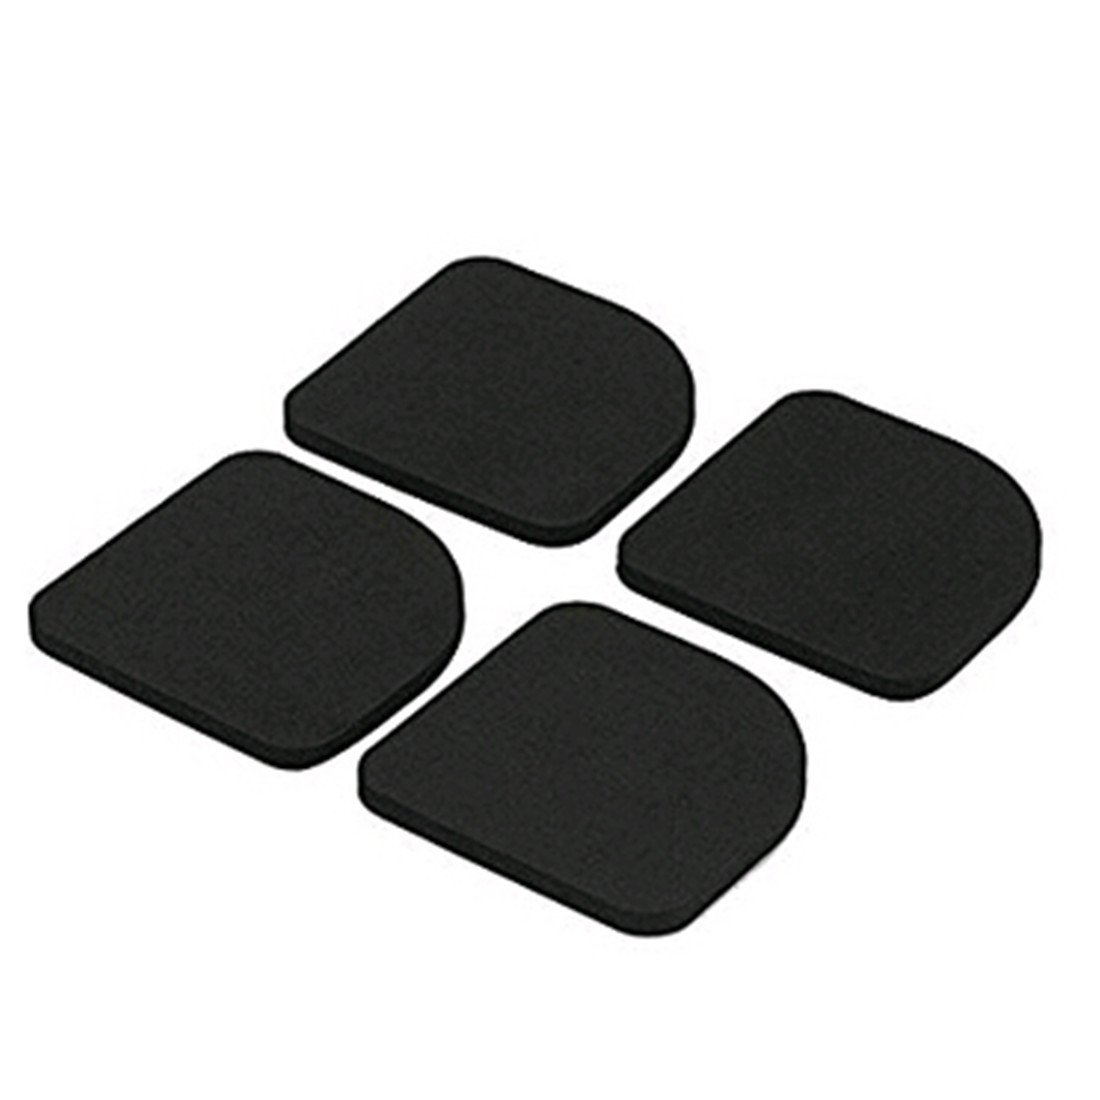 VWH Washing Machine Refrigerator Anti-Vibration Shock Pads Machine Feet Non-slip Mat Yingwei